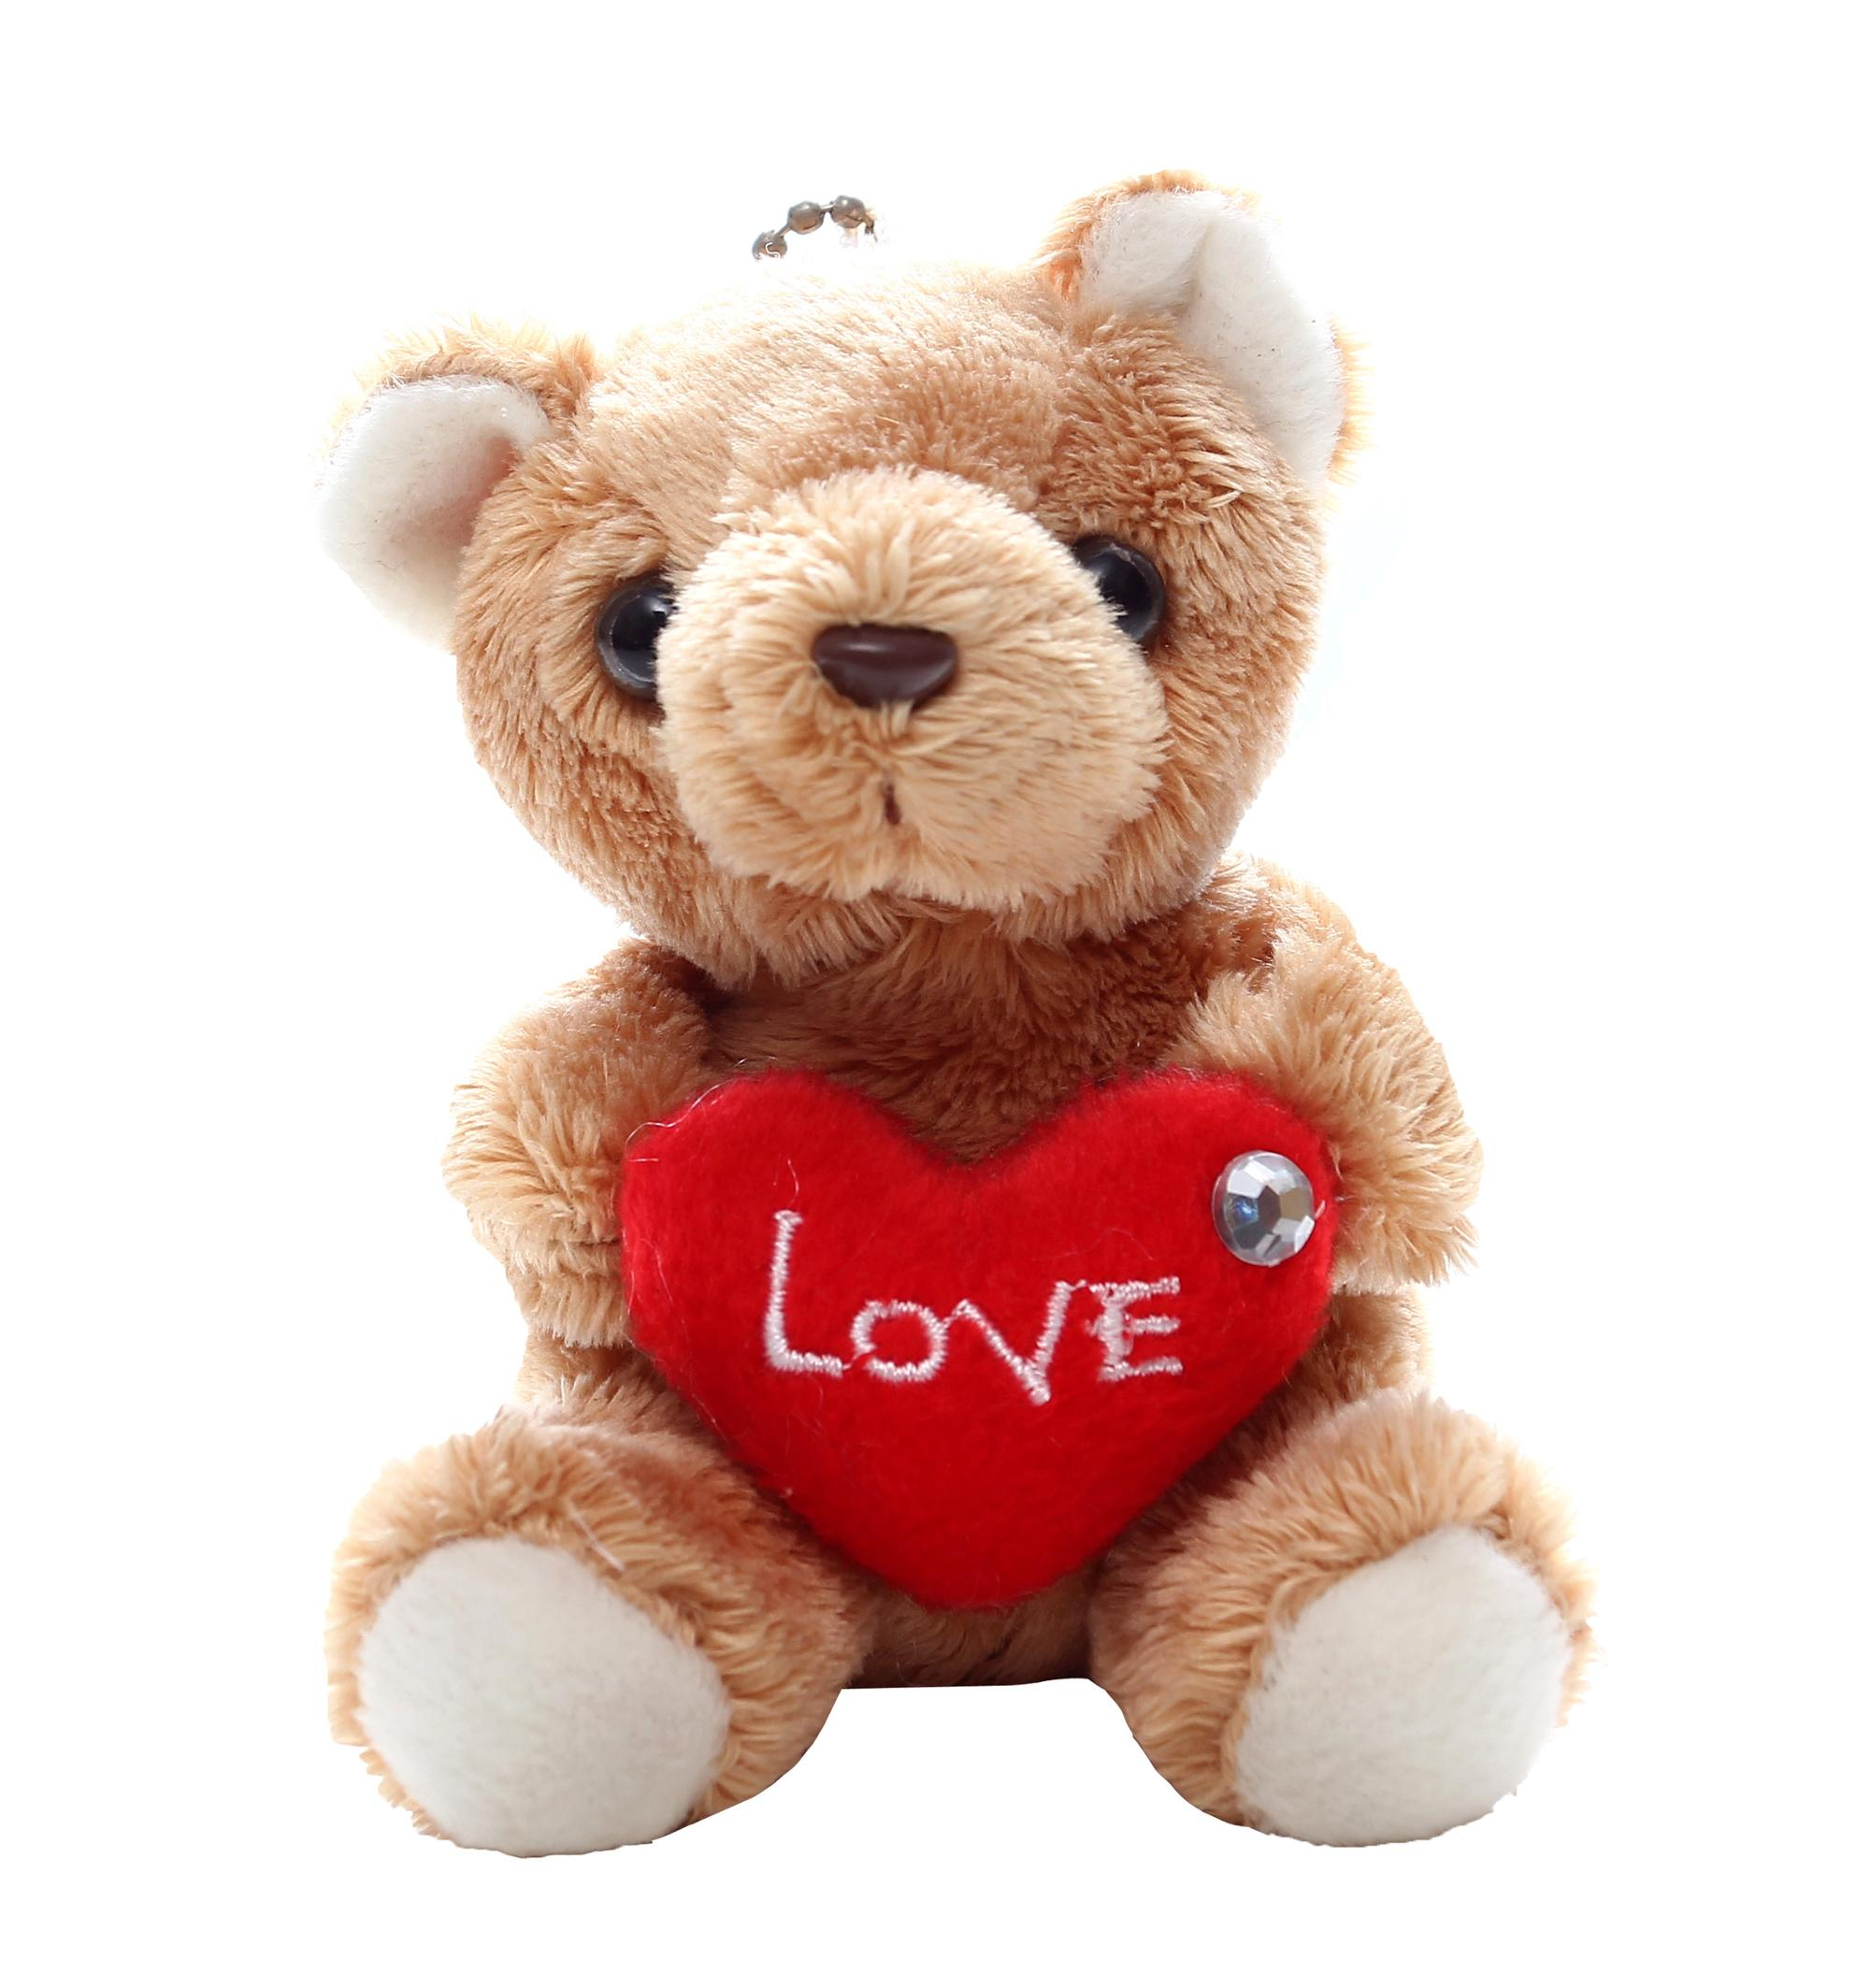 plush pink bear i love you teddy bear gifts for valentine day - buy